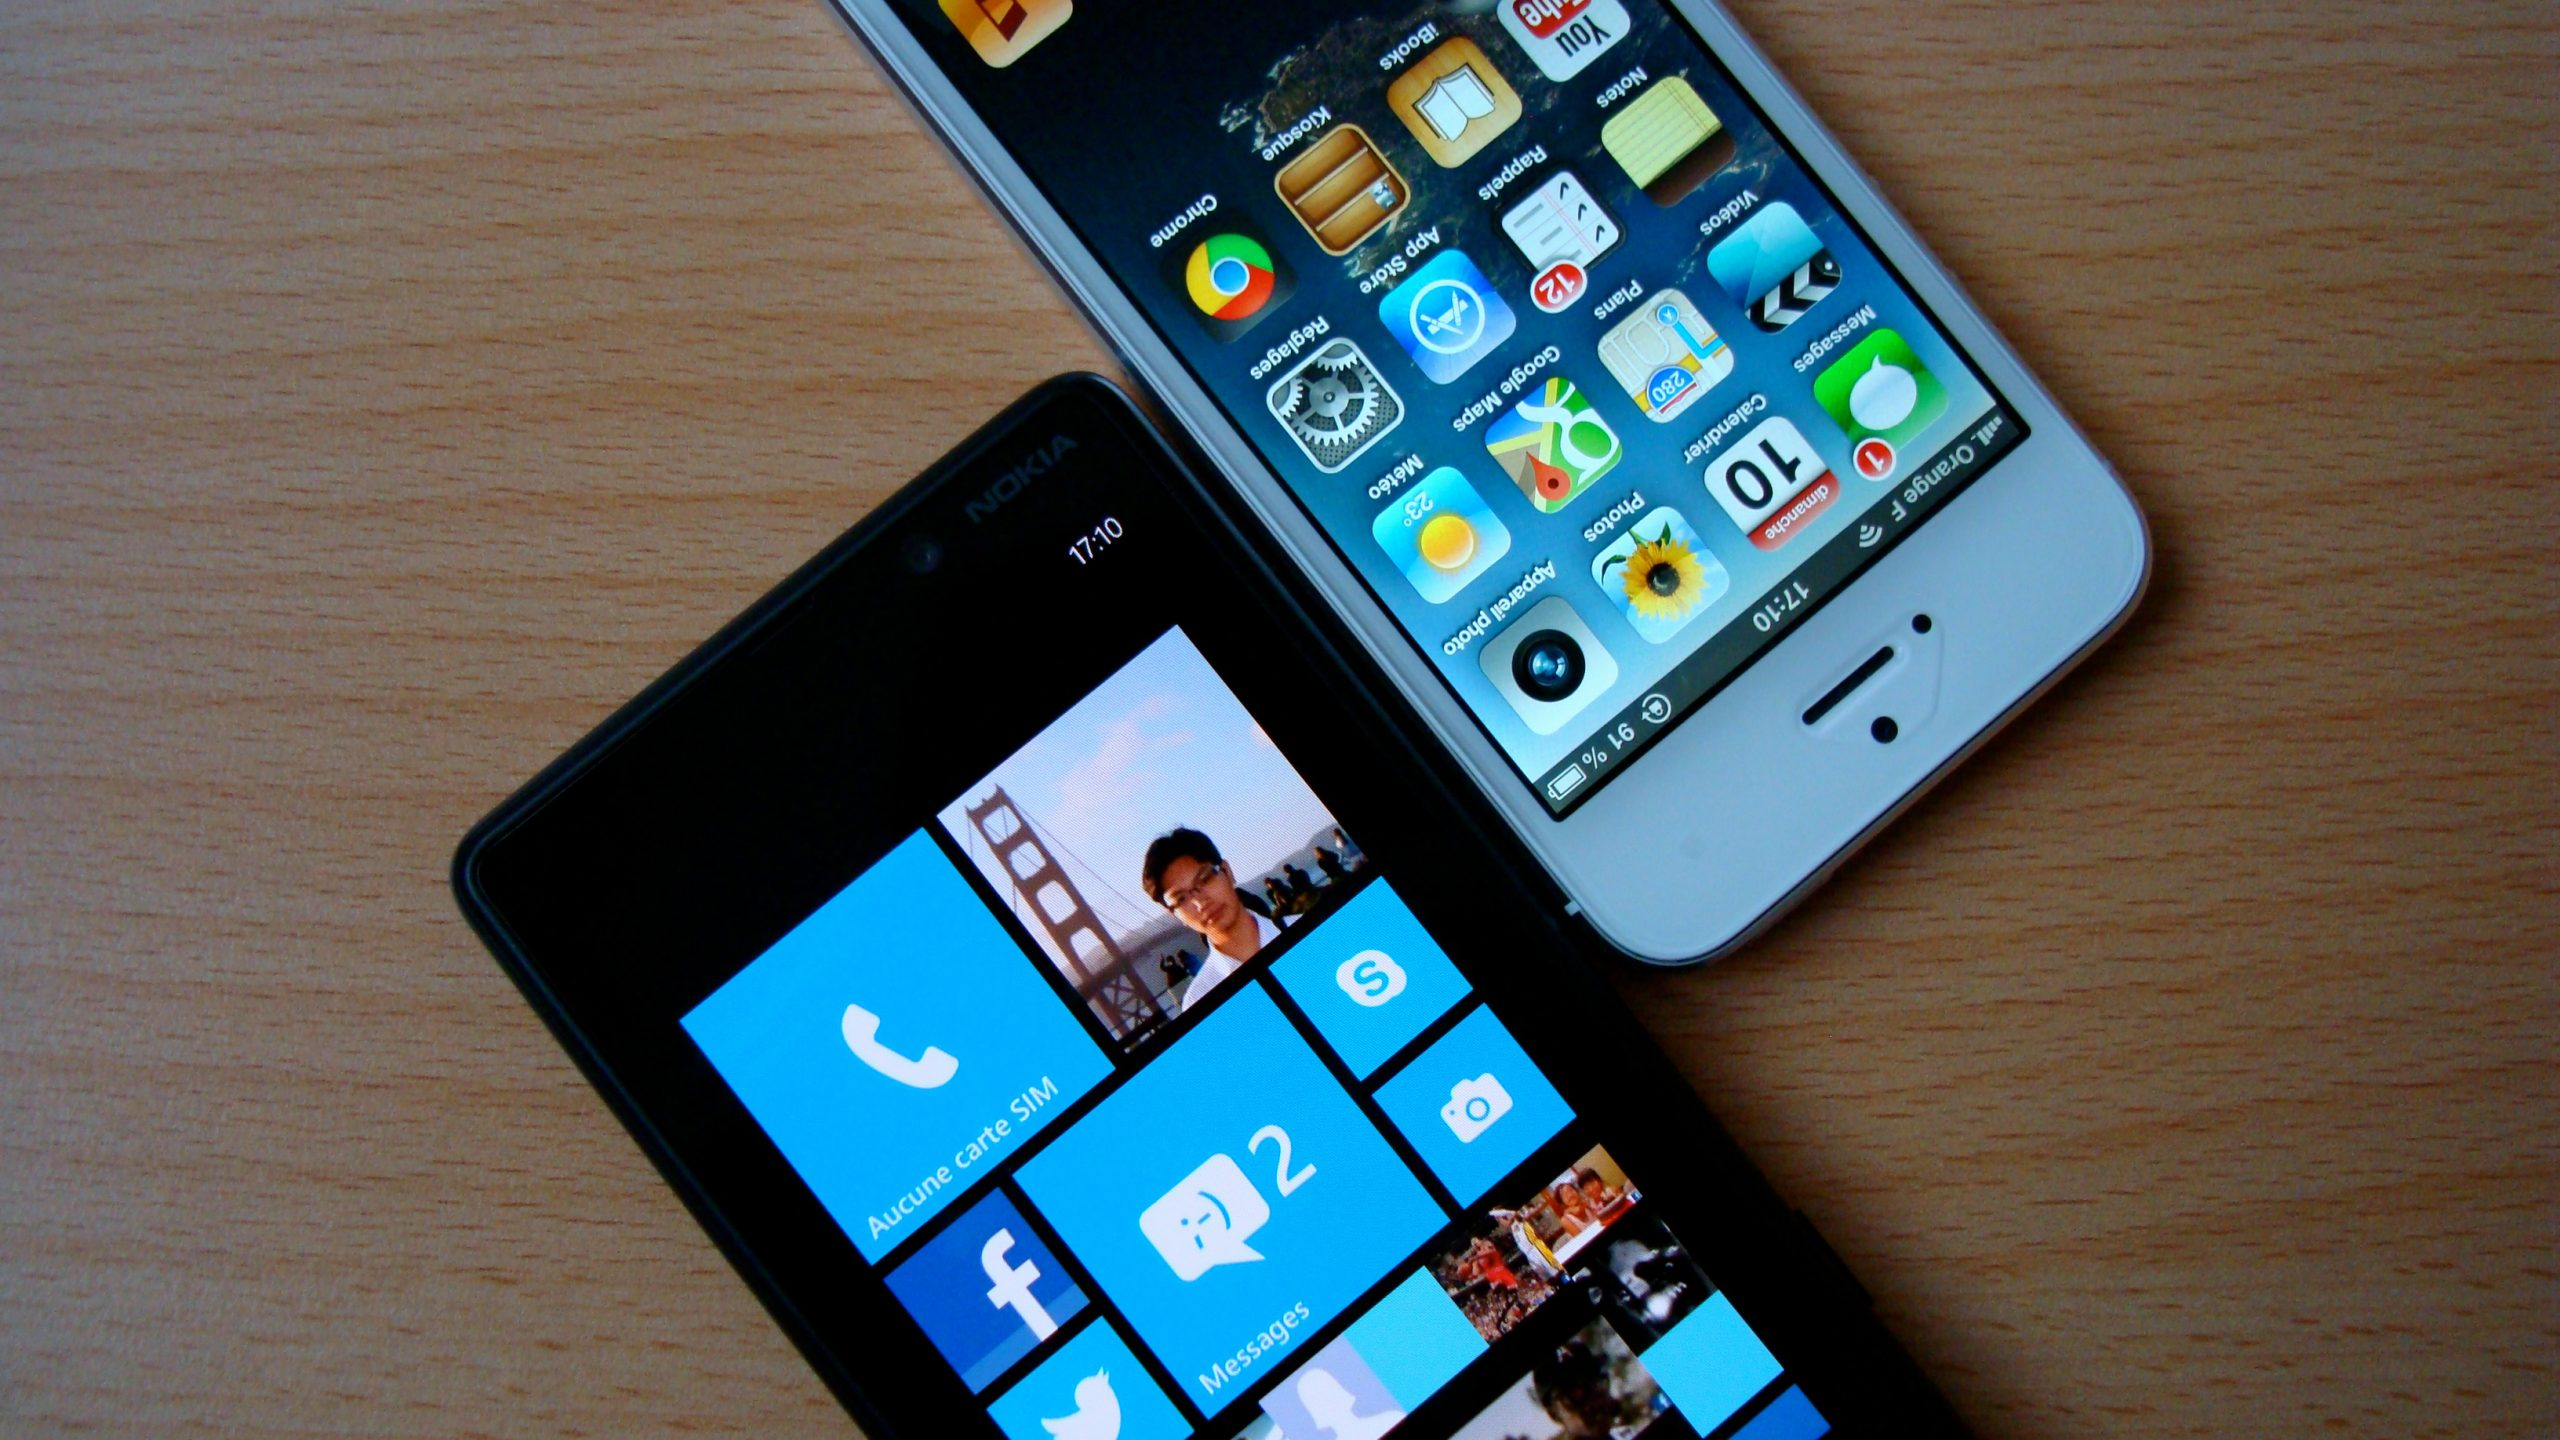 Failed to switch: 2 semaines avec un Windows Phone